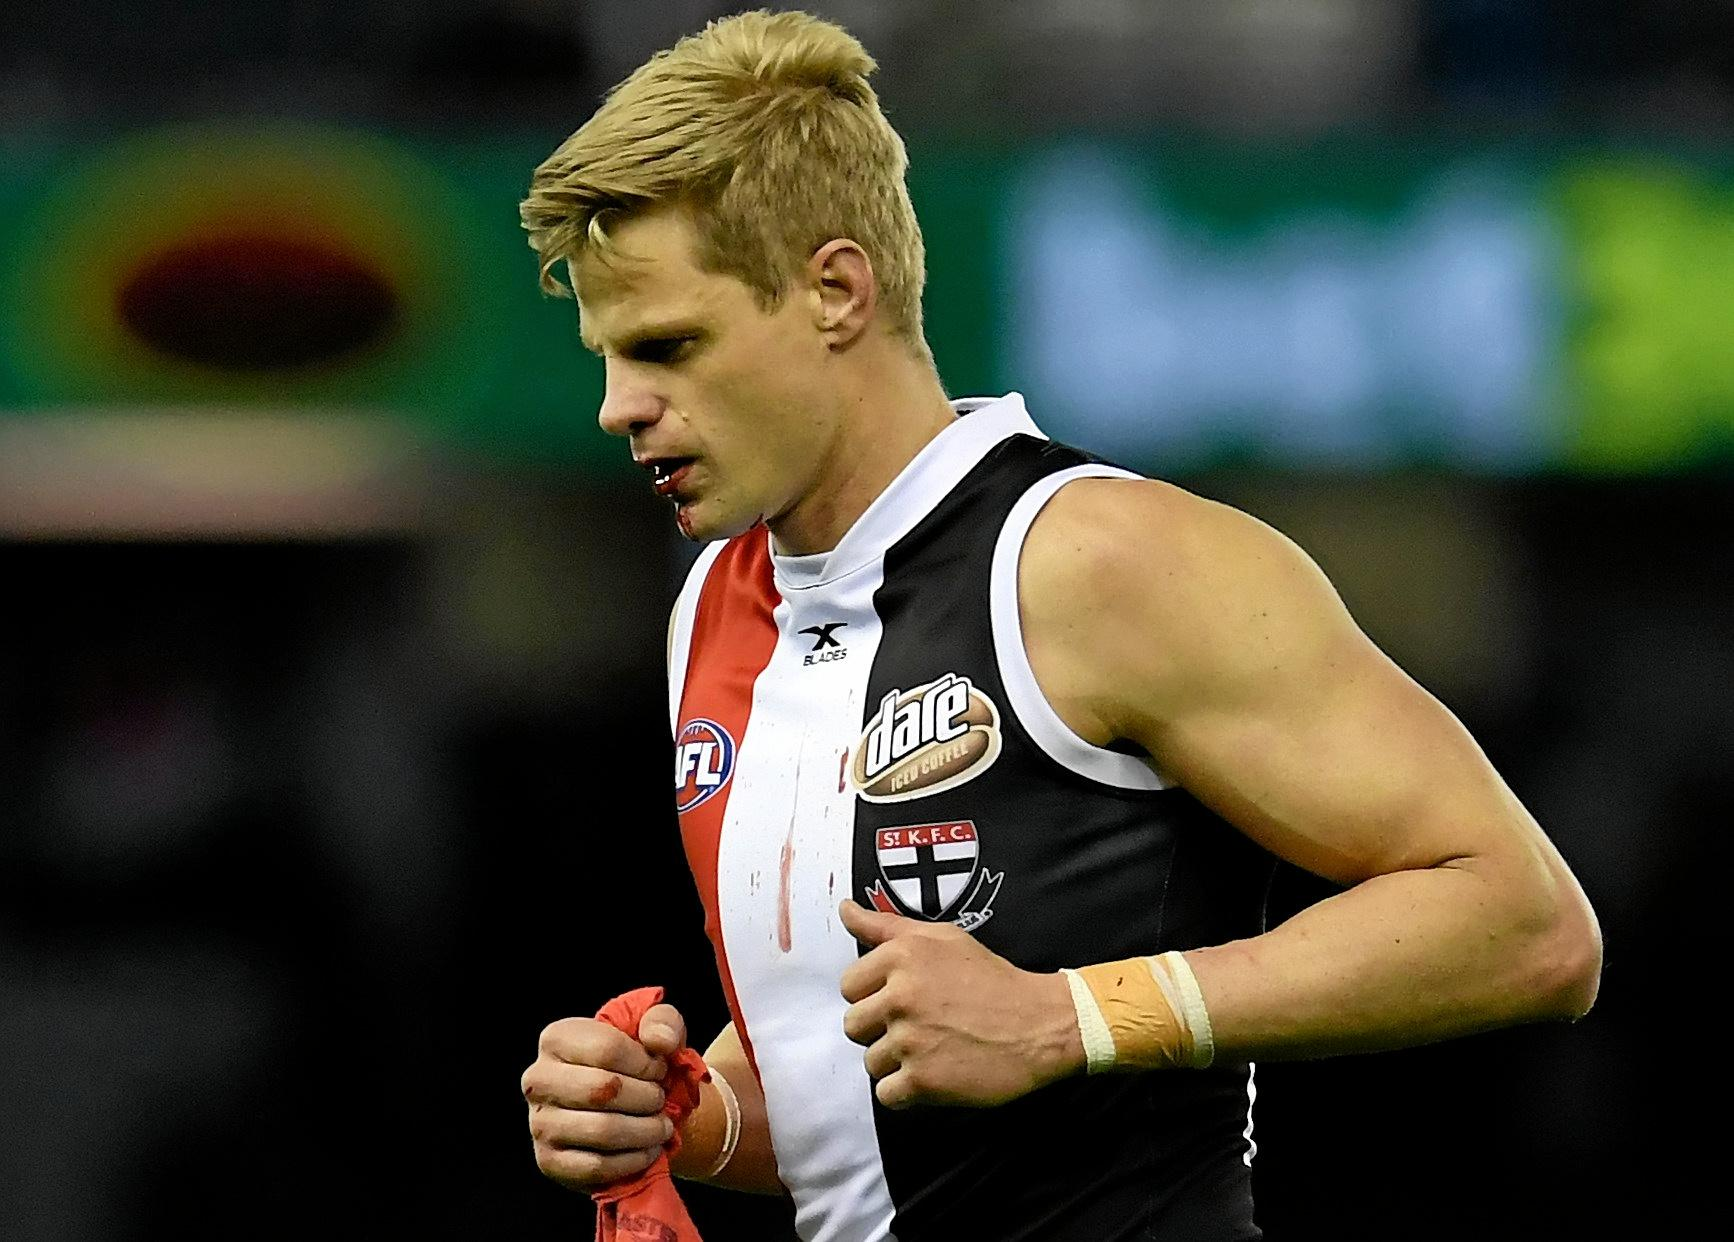 Nick Riewoldt of the Saints could be playing his last game this weekend.